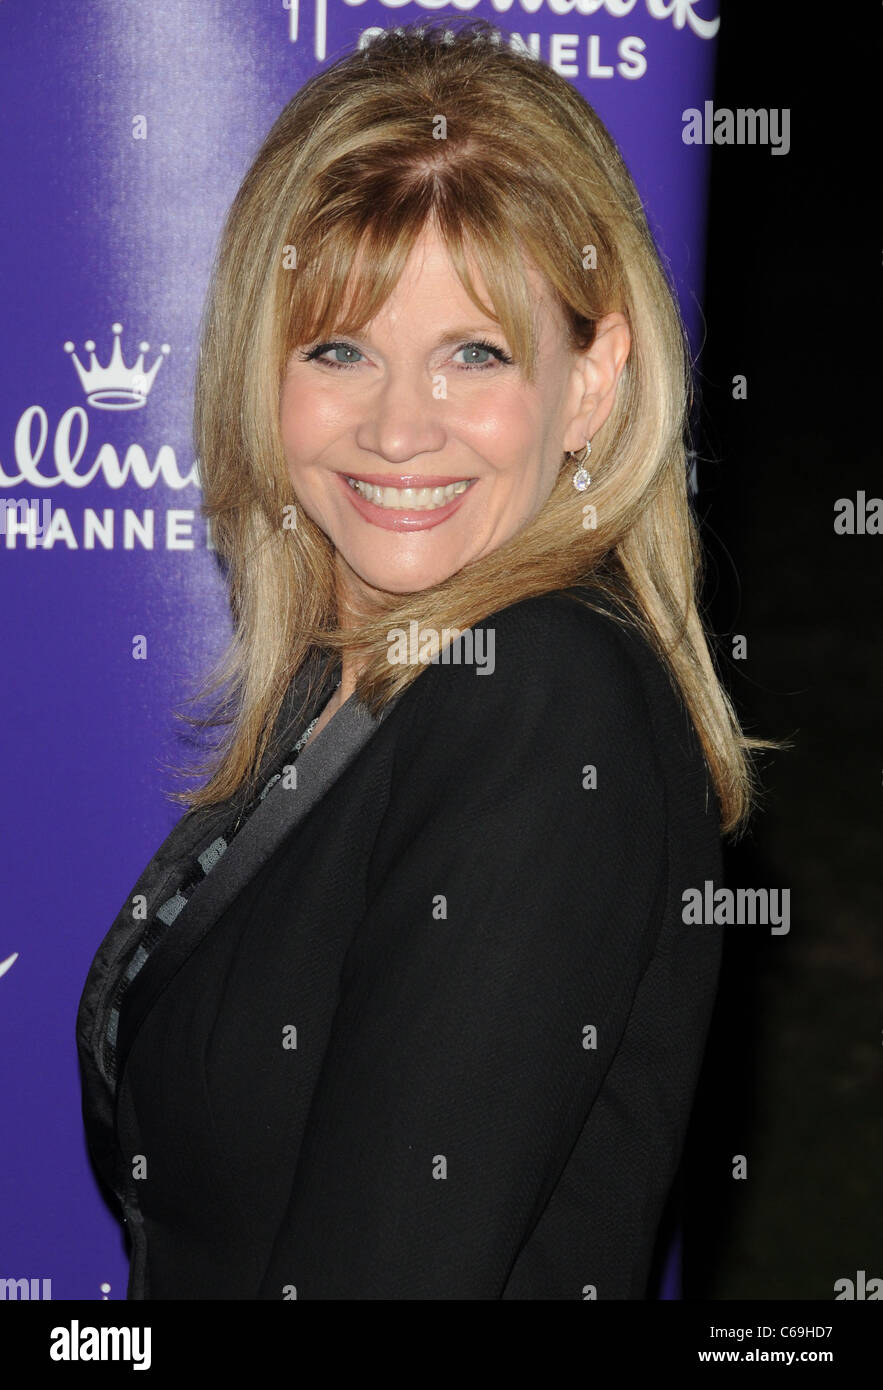 Markie Post at arrivals for Hallmark Channel Winter 2011 TCA Press Tour Evening Gala, Tournament House, Pasadena, - Stock Image